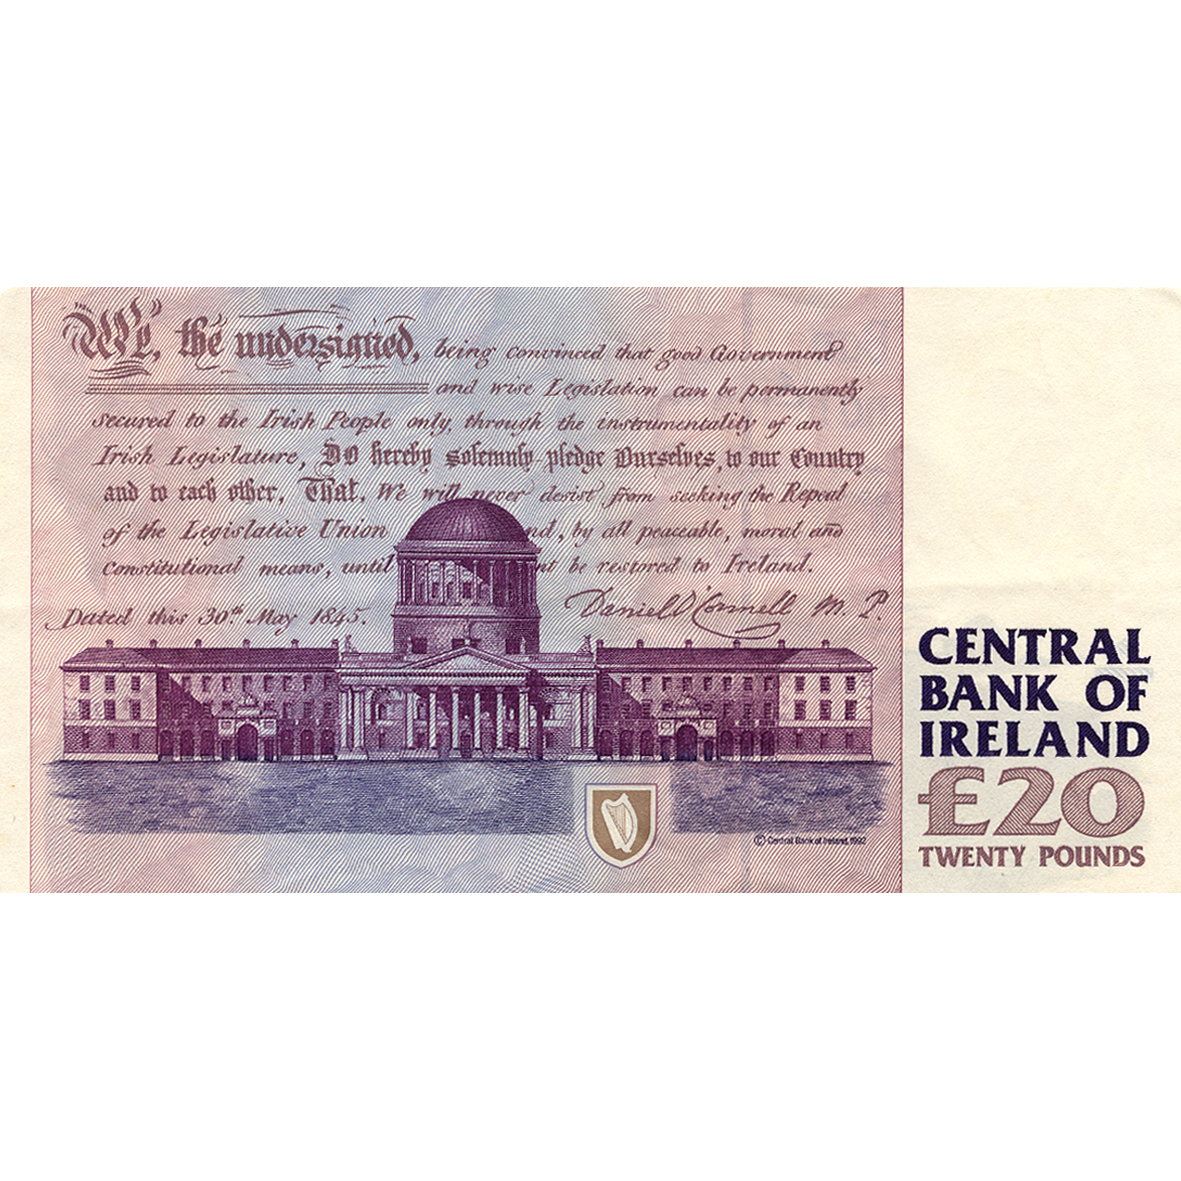 United Kingdom of Great Britain, Republic of Ireland, 20 Irish Pounds (reverse)